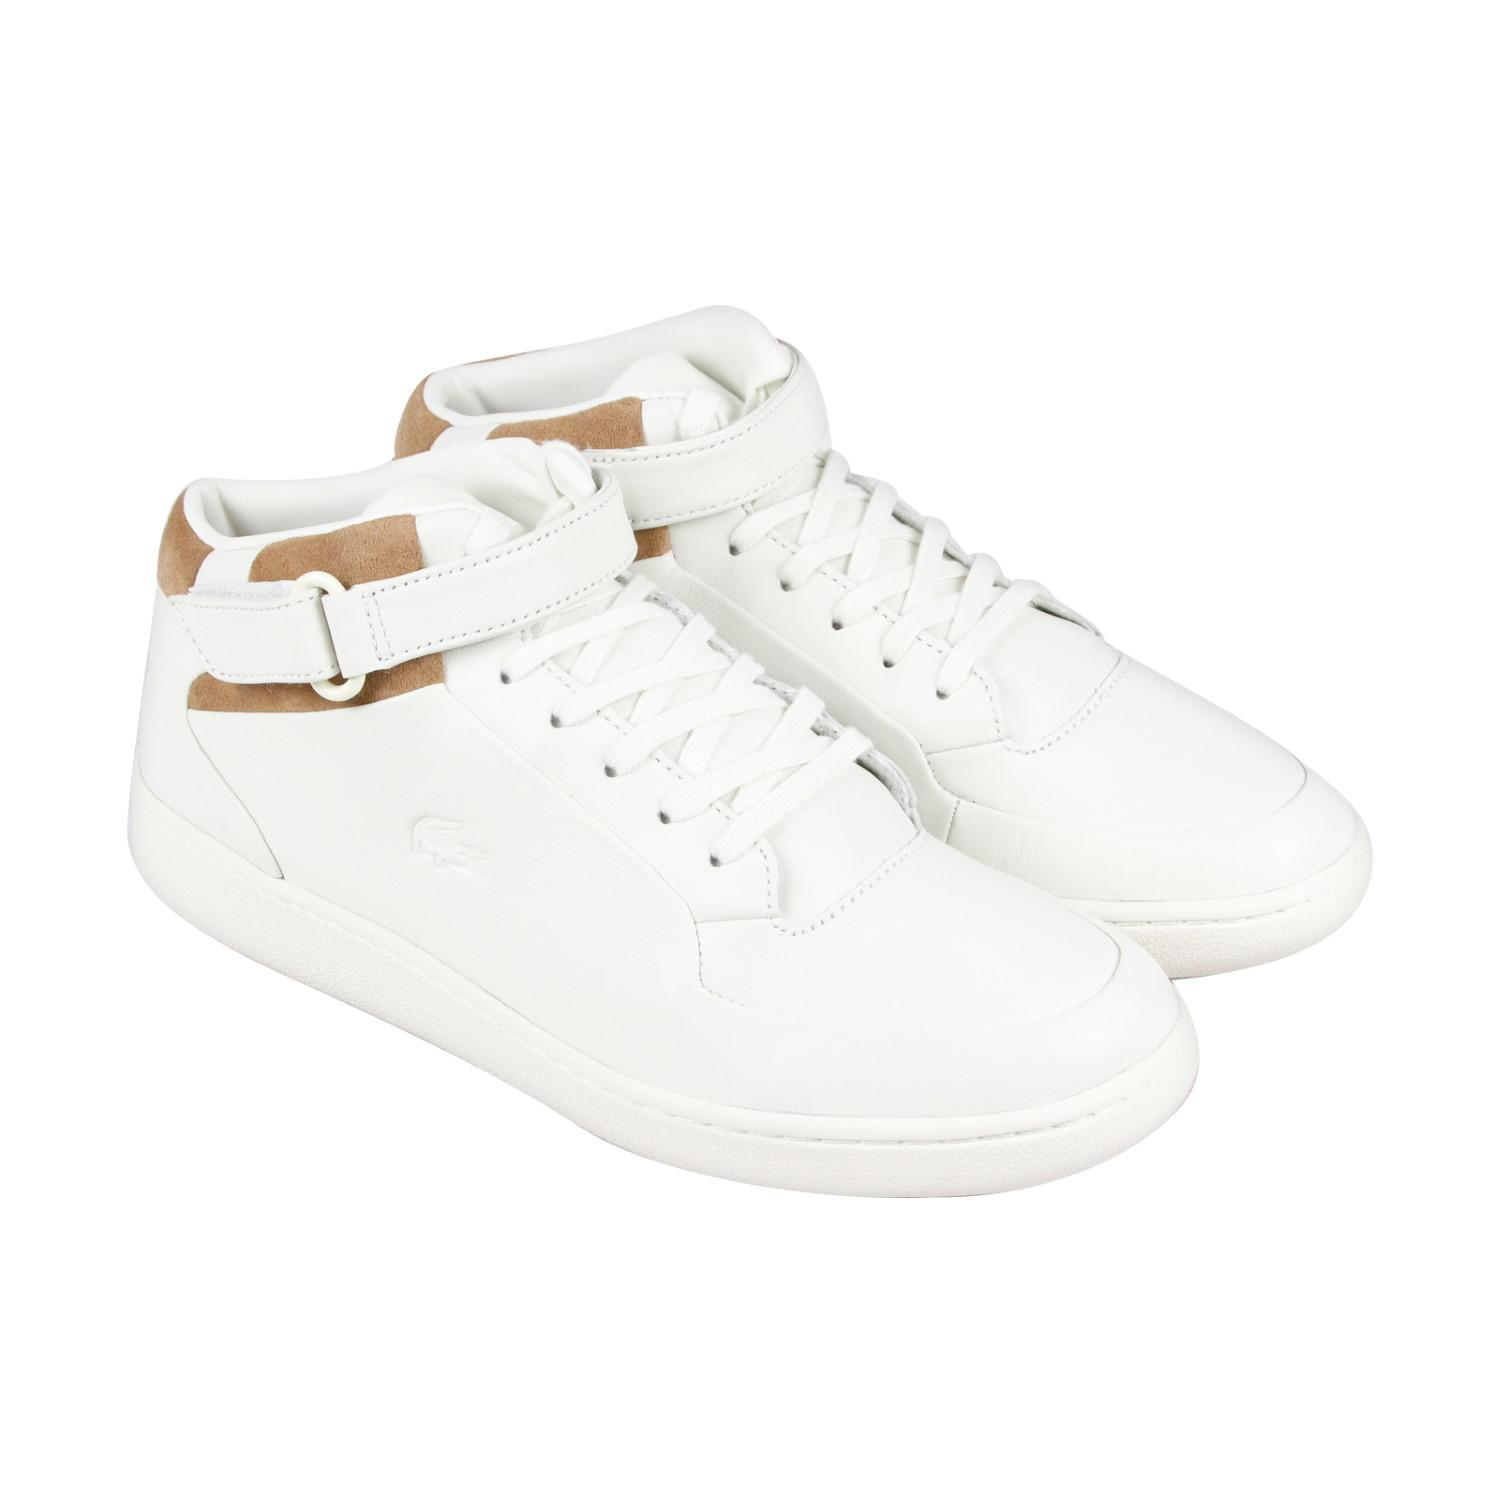 new product 3d370 b7ad7 lacoste--Turbo-416-1-Cam-Off-White-Mens-High-Top-Sneakers.jpeg